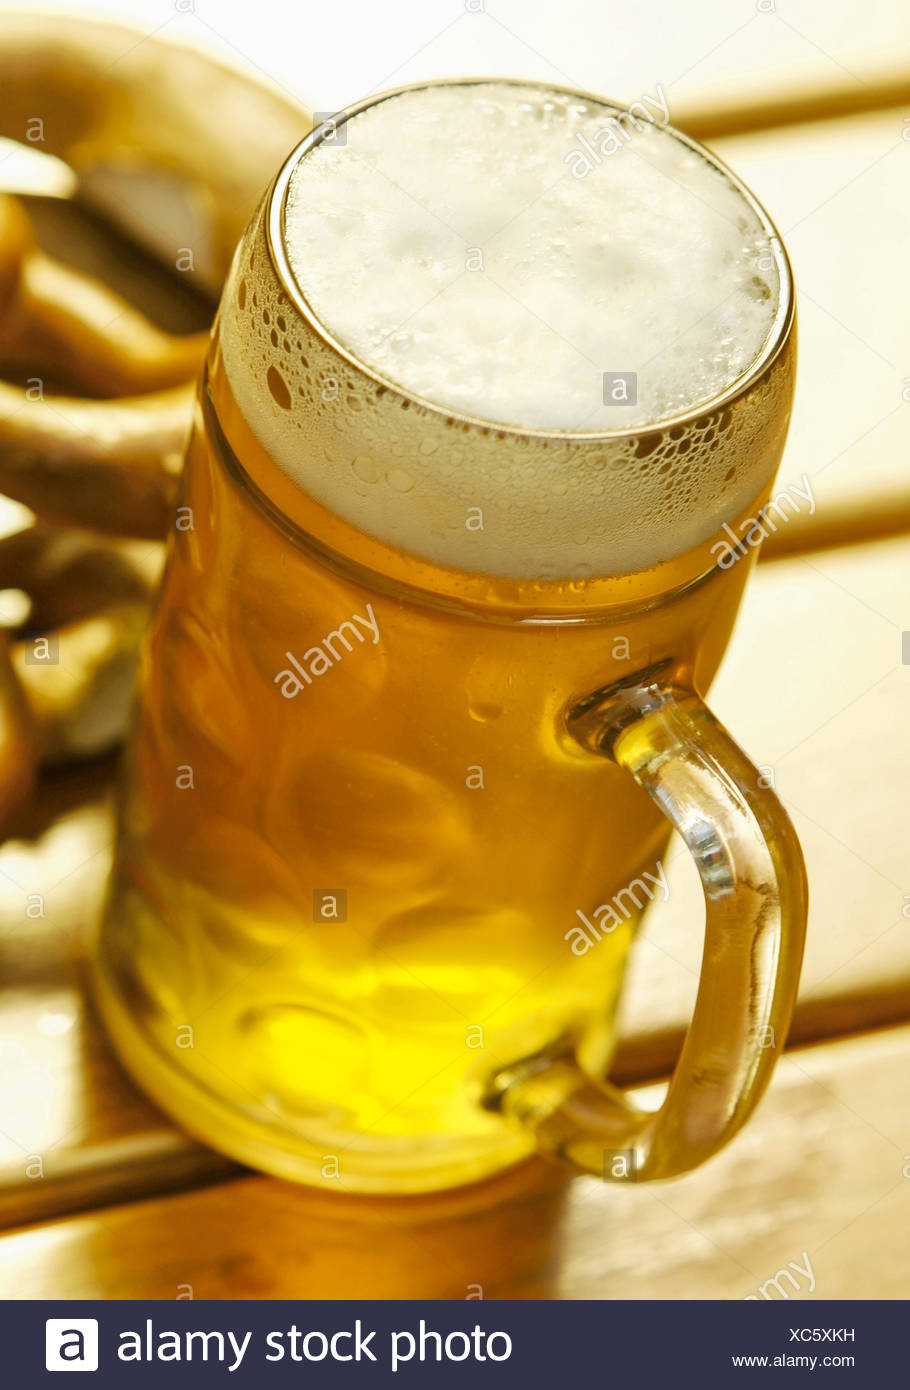 Bier Glas Bier Glas Stock Photos Bier Glas Stock Images Page 5 Alamy